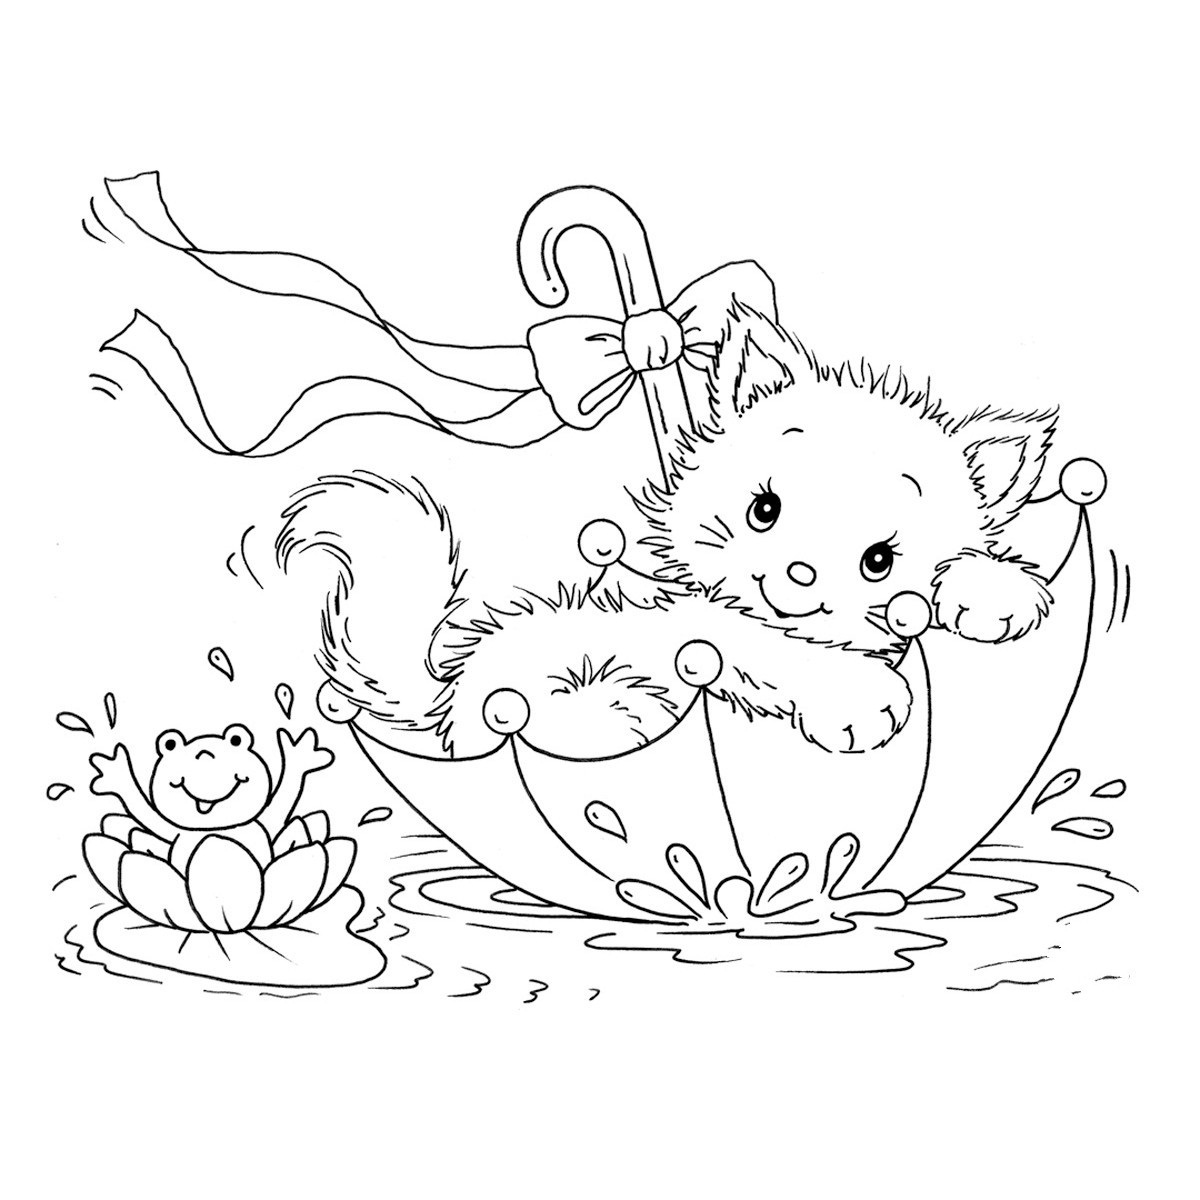 kitten color page free printable cat coloring pages for kids color page kitten